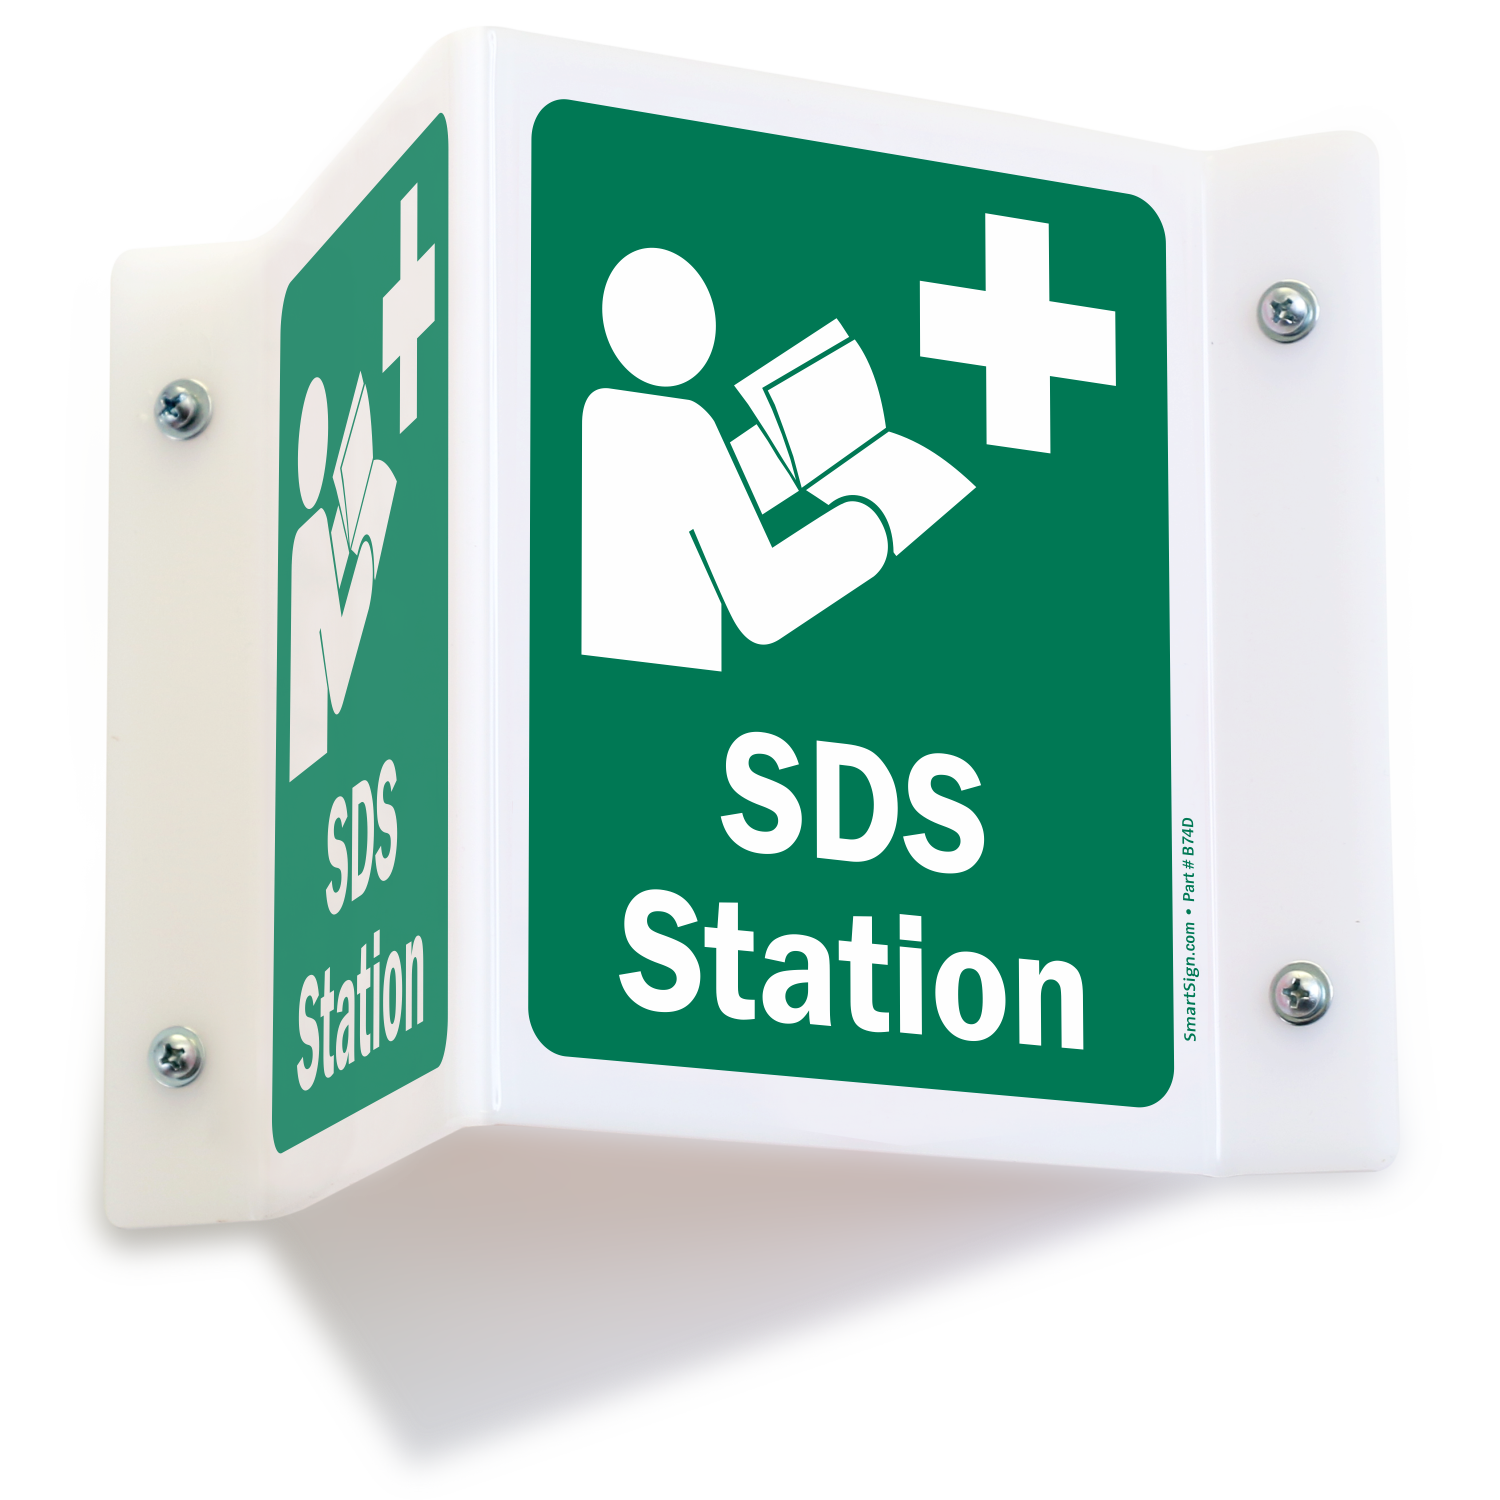 SDS Signs | MSDS Signs | Material Safety Data Sheet Signs